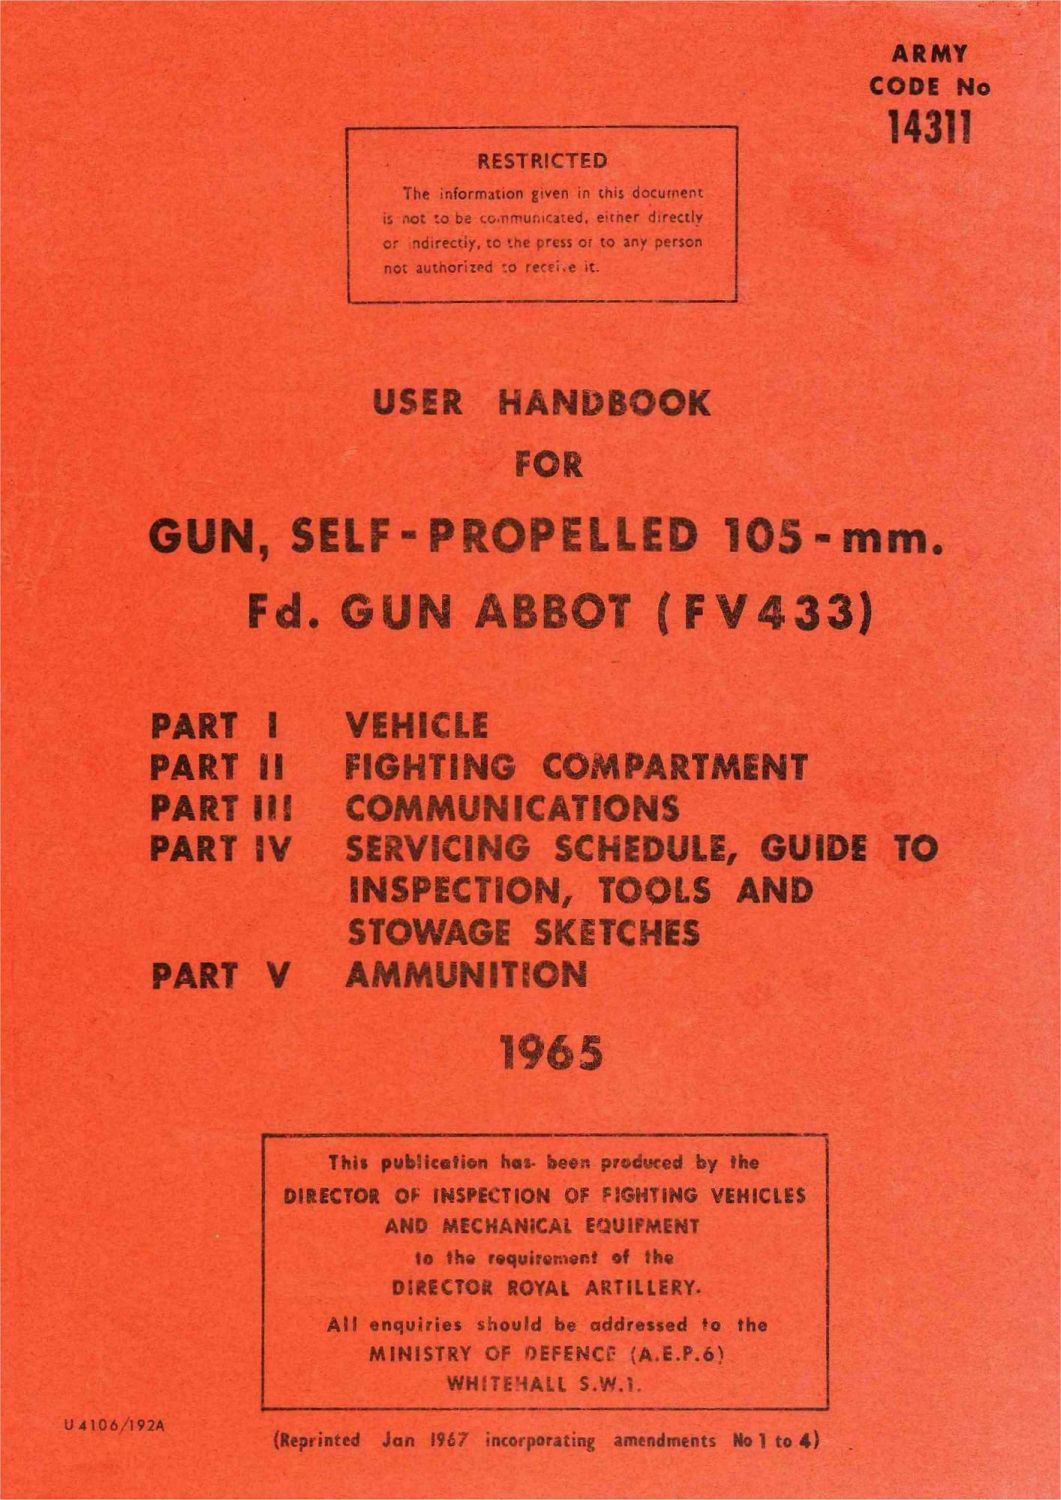 FV433 Abbot 105mm User Handbook